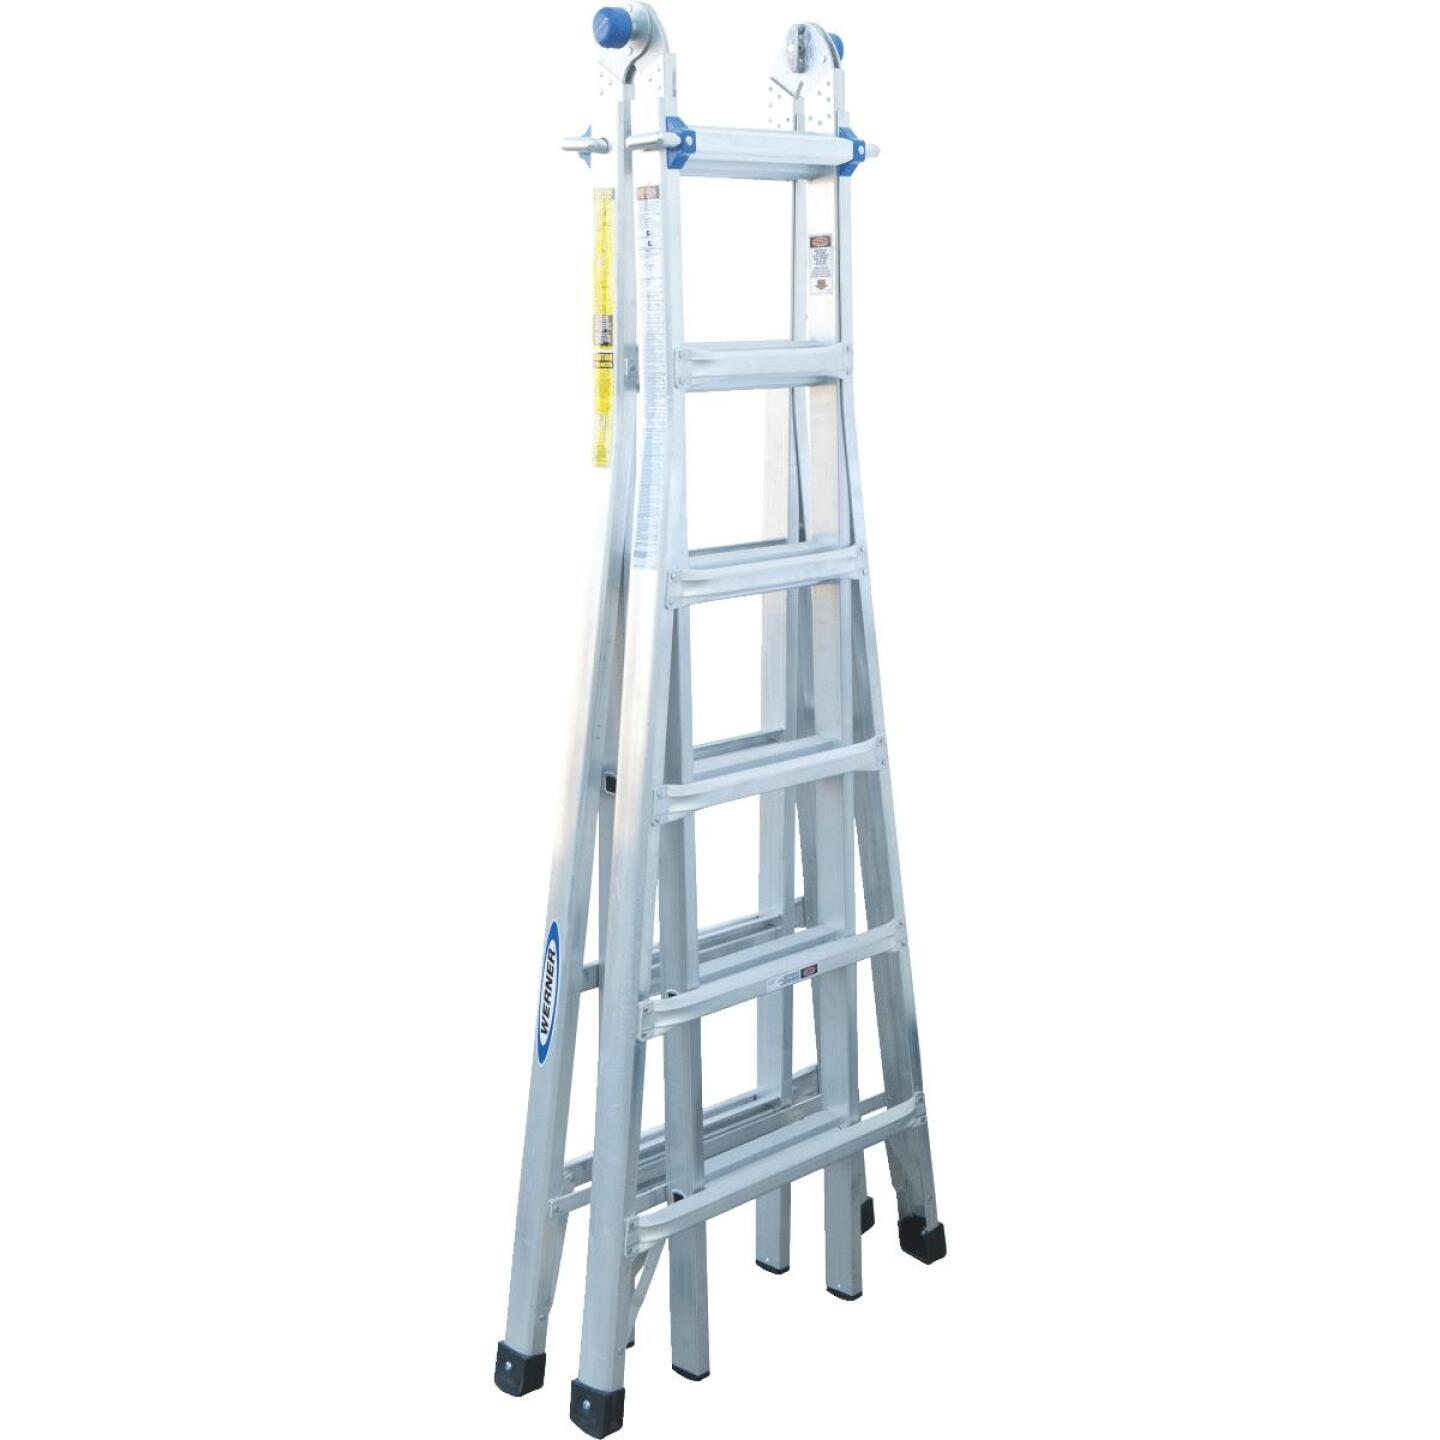 Werner 26 Ft. Aluminum Multi-Position Telescoping Ladder with 300 Lb. Load Capacity Type IA Ladder Rating Image 5